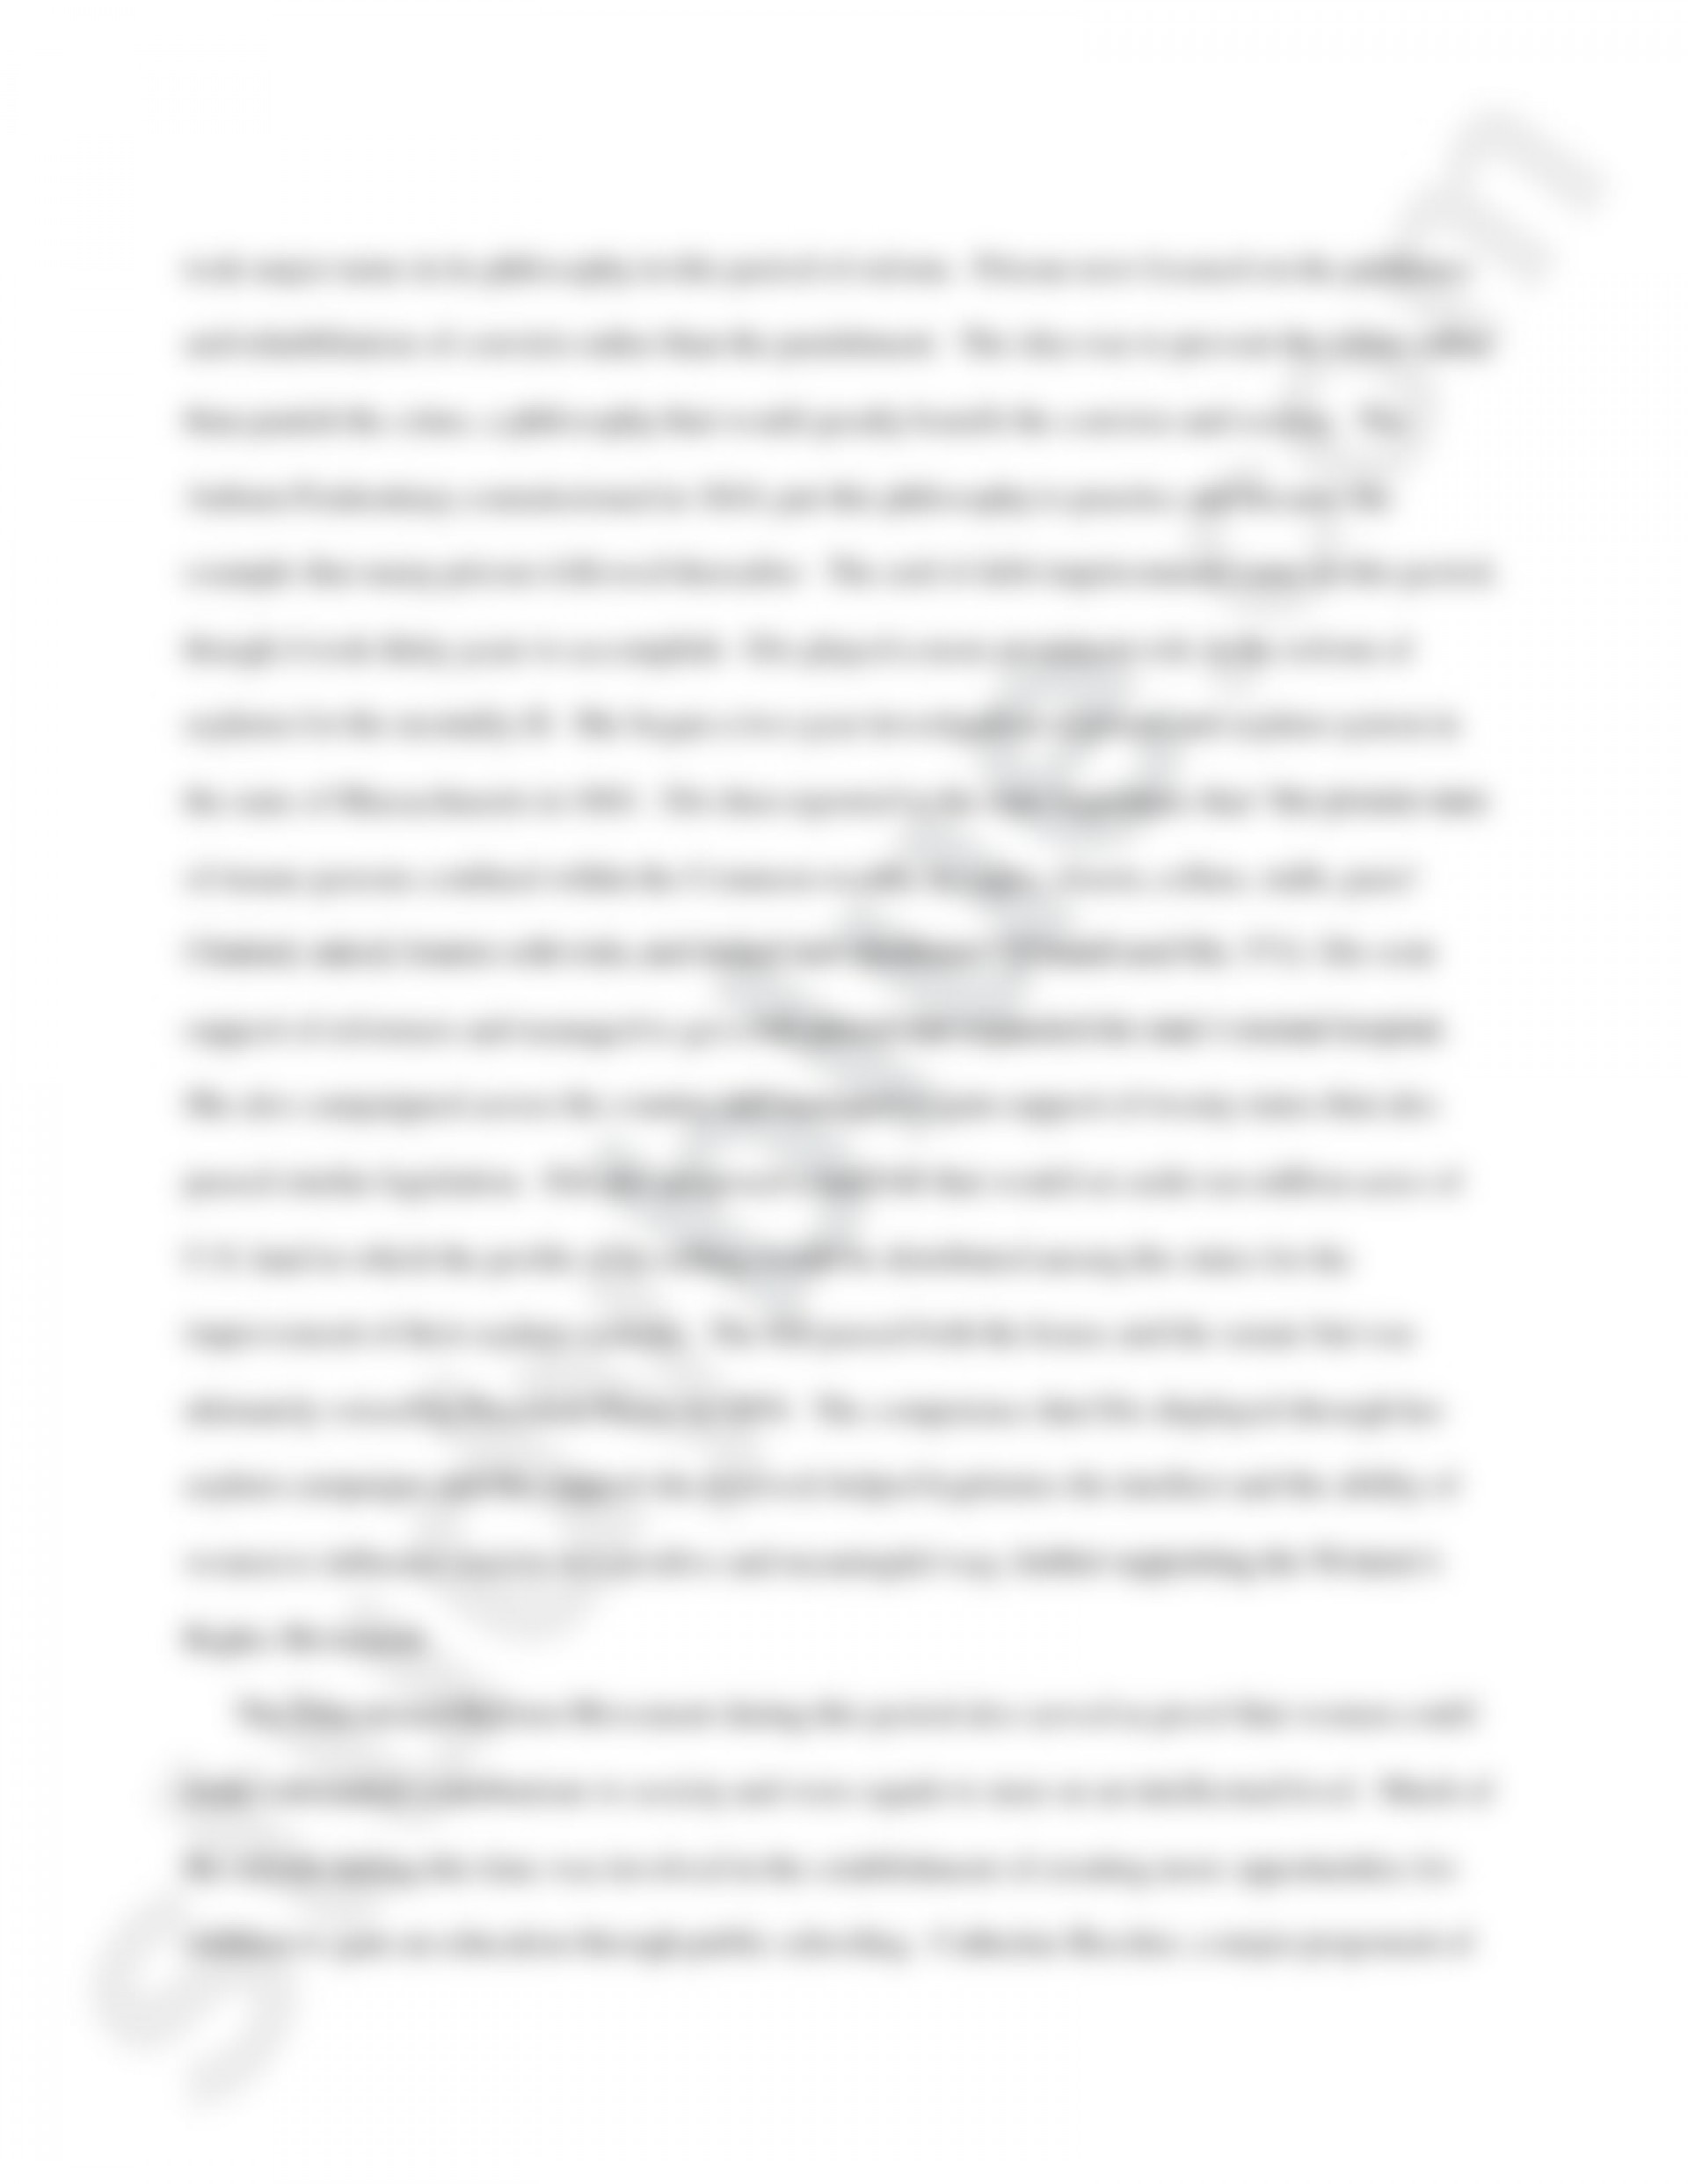 014 Essay On Women Preview2 Incredible Women's Rights In India Short Empowerment 1920